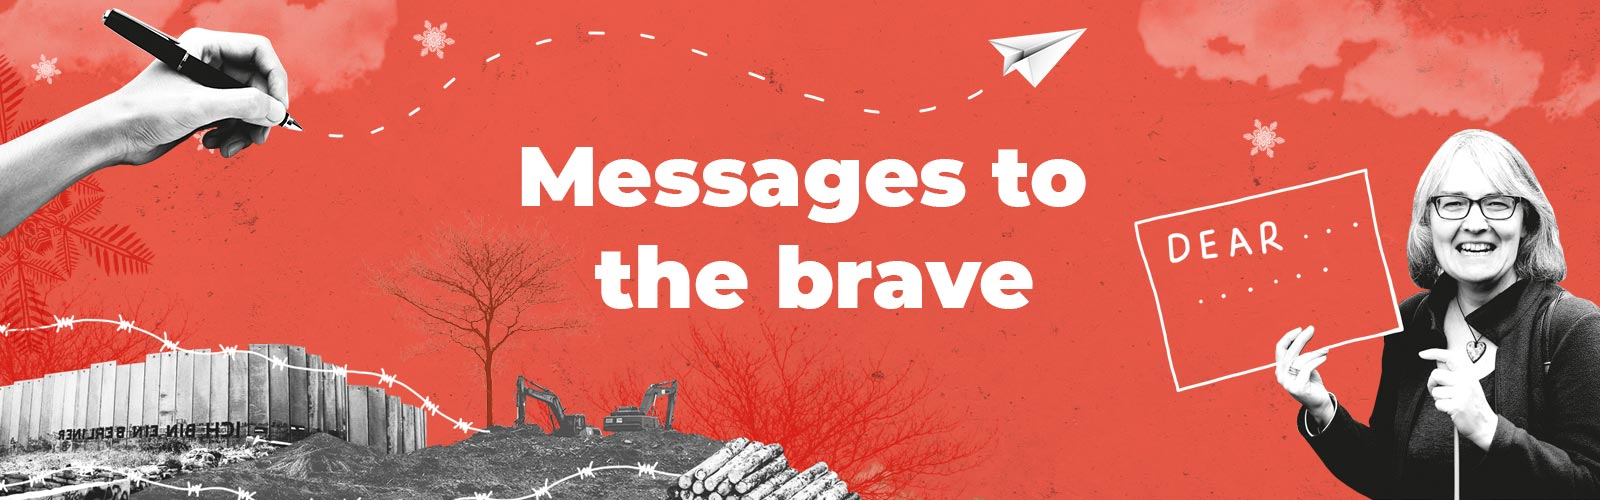 Messages to the brave